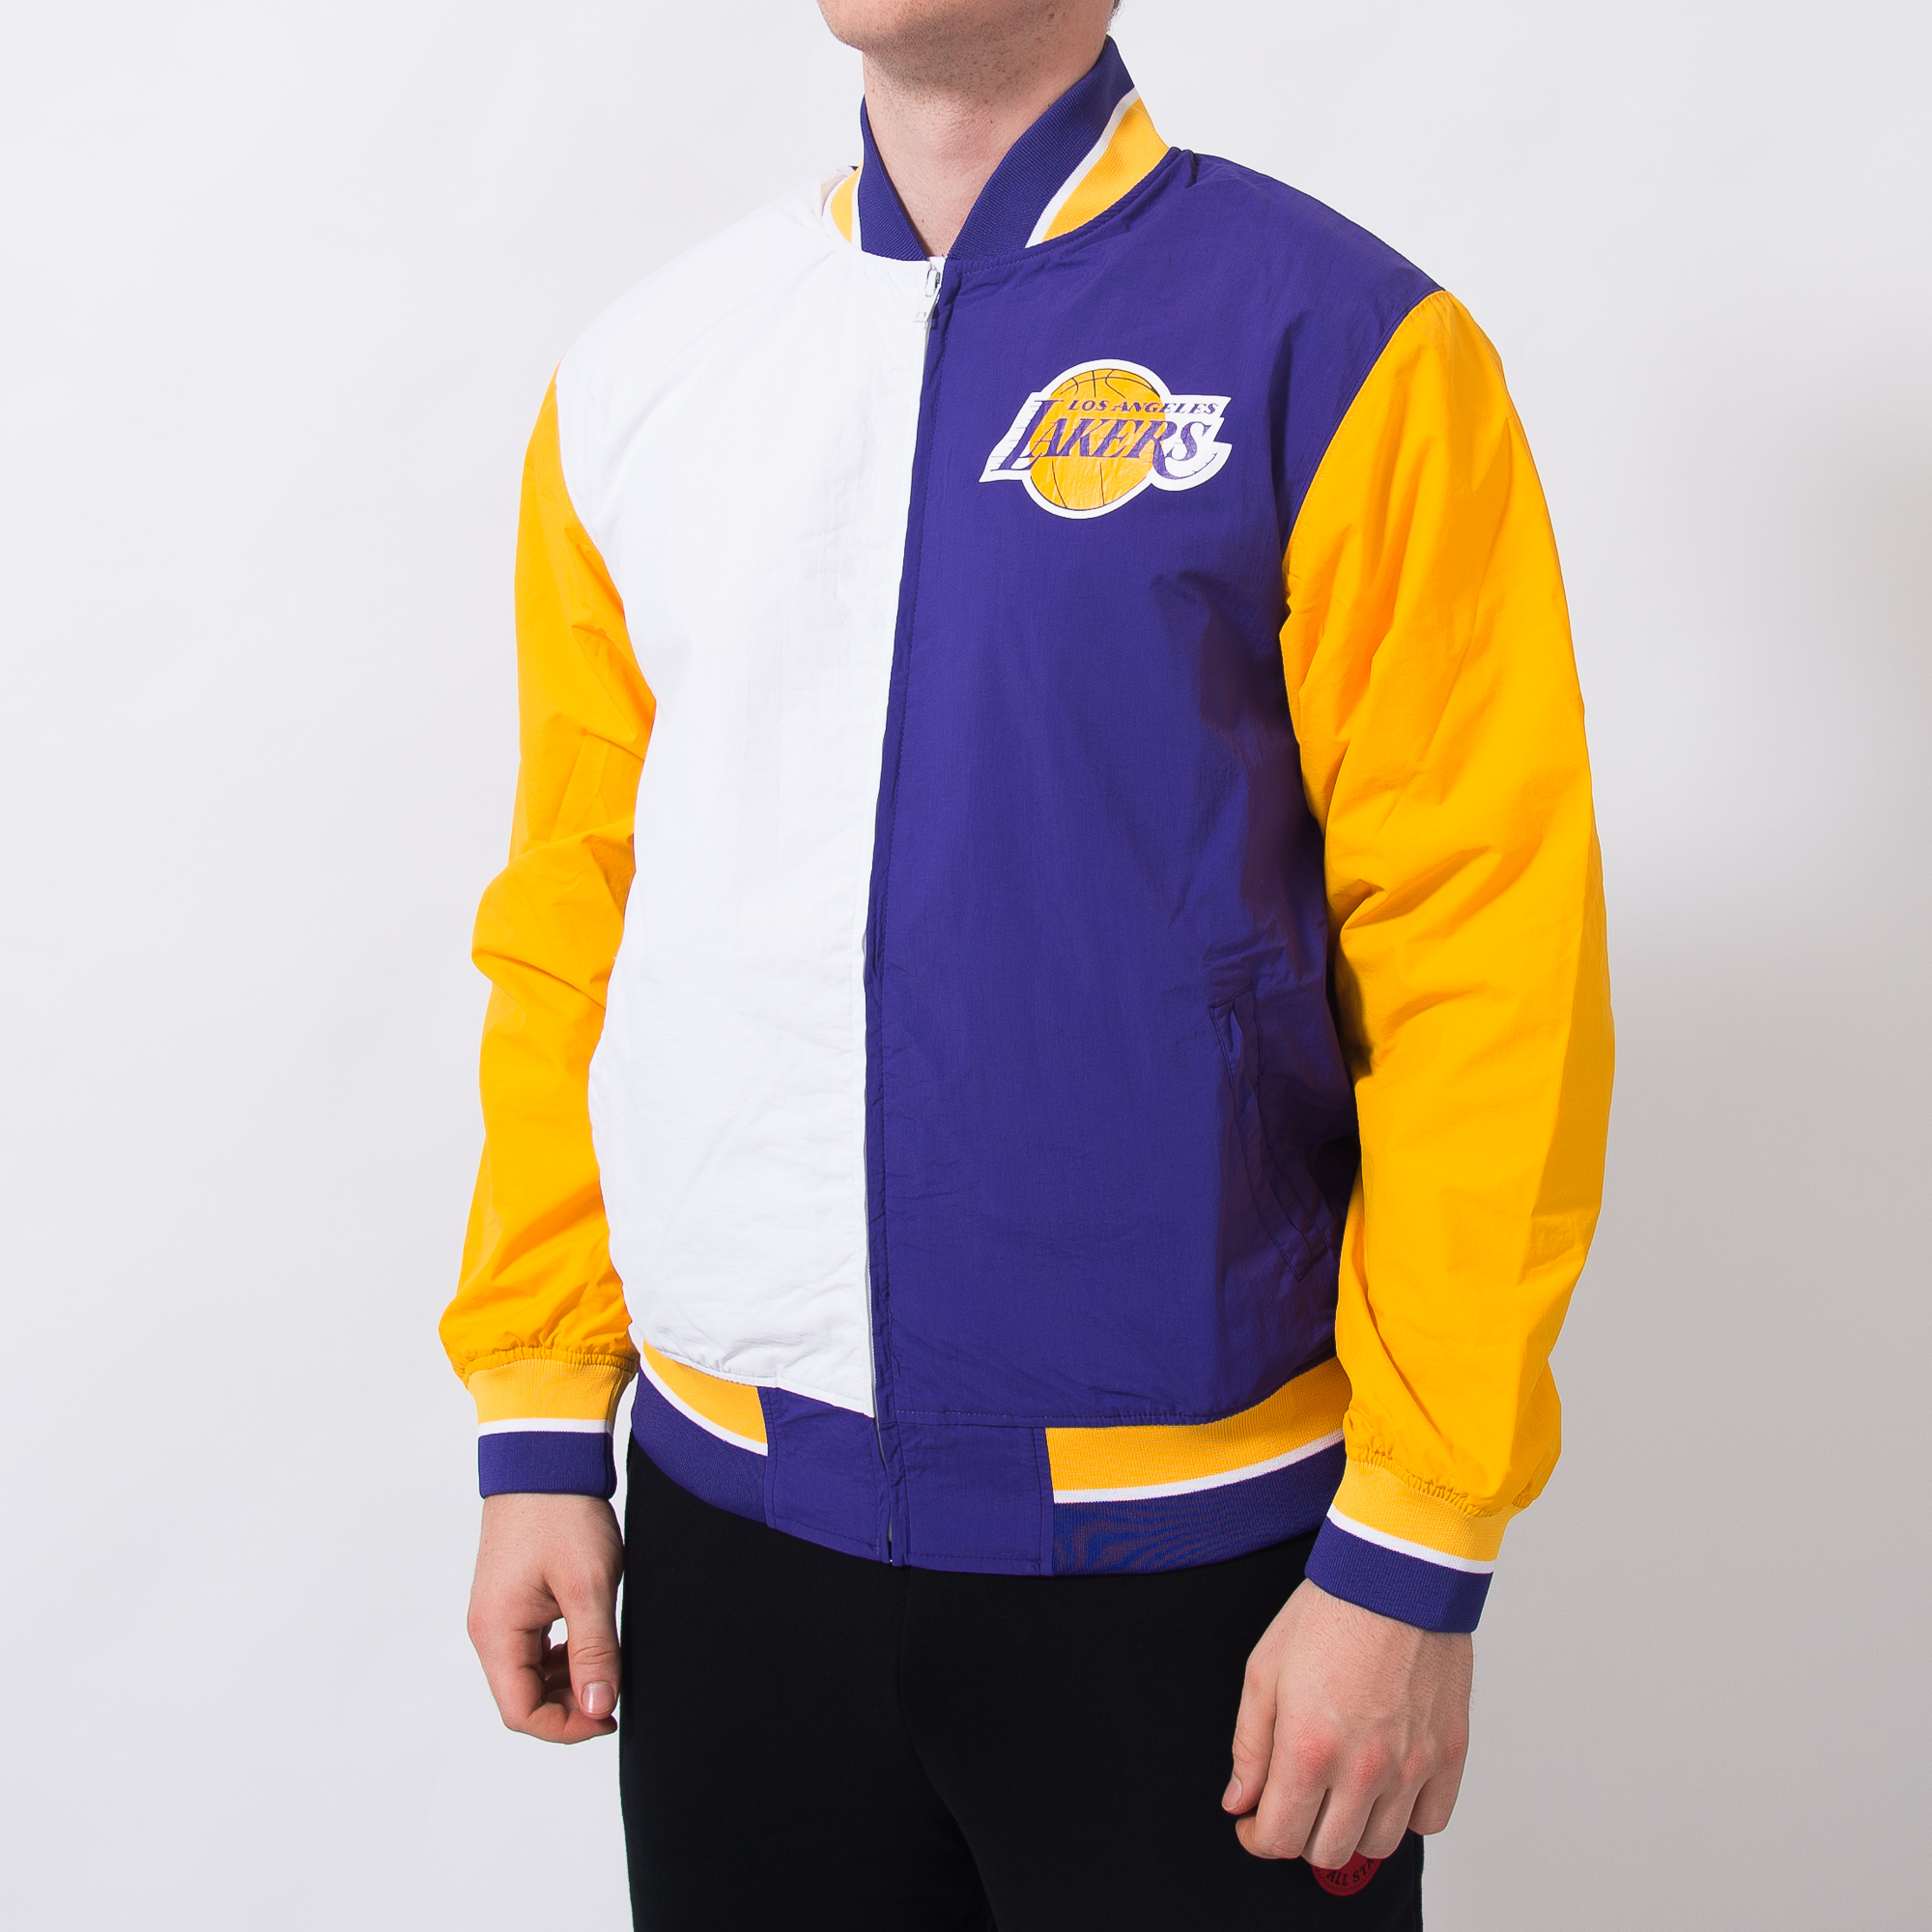 wholesale dealer e95f1 755d6 Mitchell   Ness NBA Los Angeles Lakers Team History Warm Up Jacket 2.0 - NBA  Shop Los Angeles Lakers Merchandise - Superfanas.lt